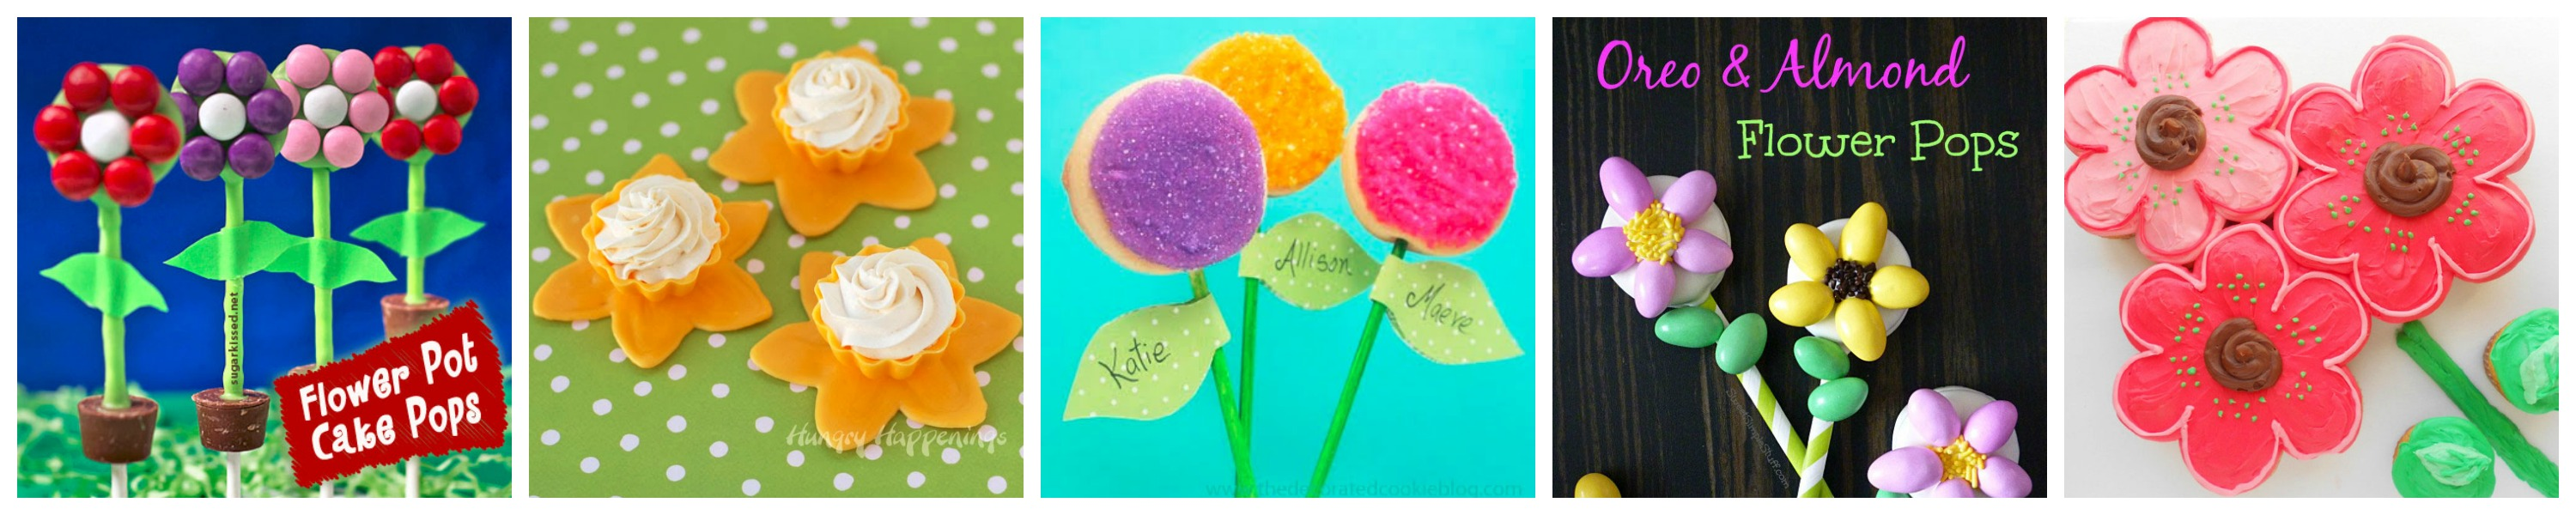 Edible-crafts-flowers